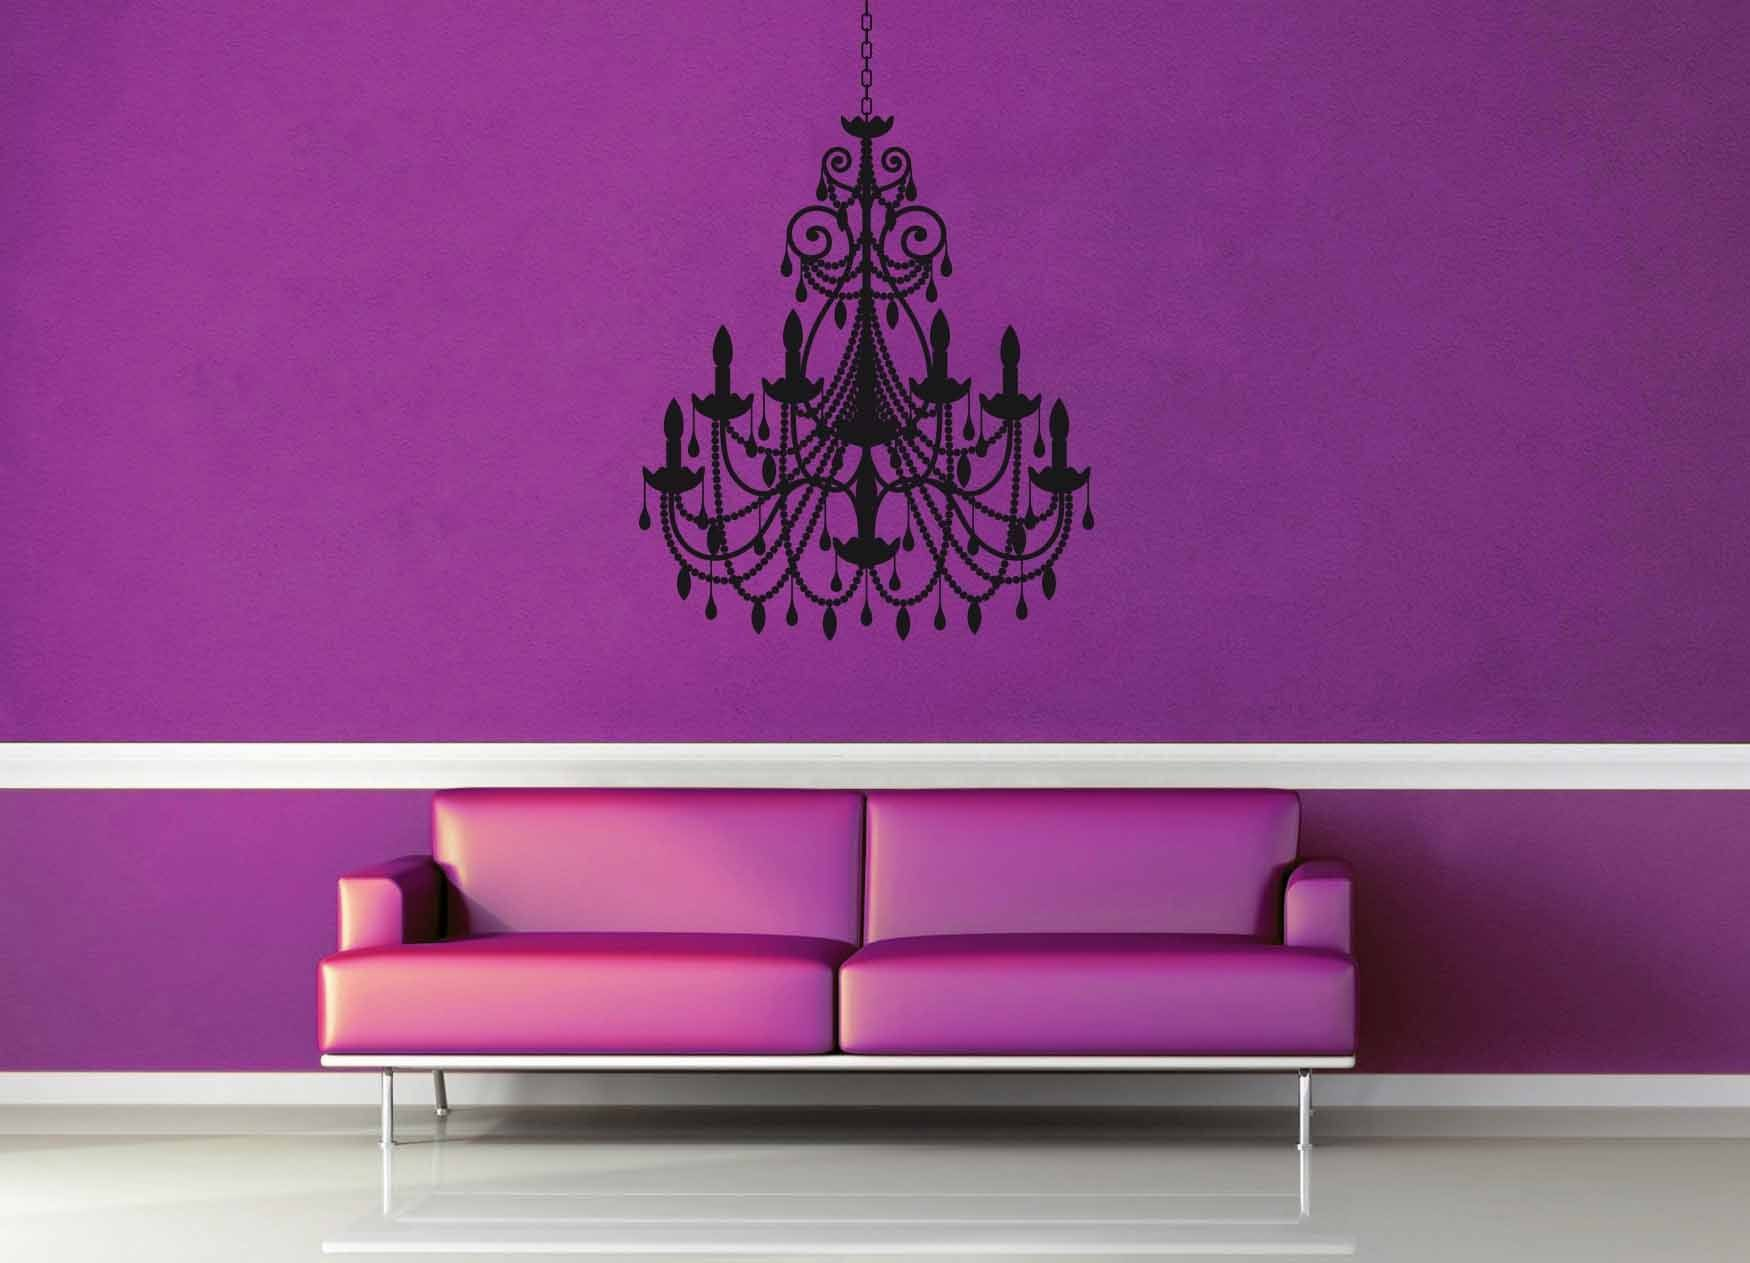 Chandelier - Wall Decal - No 2